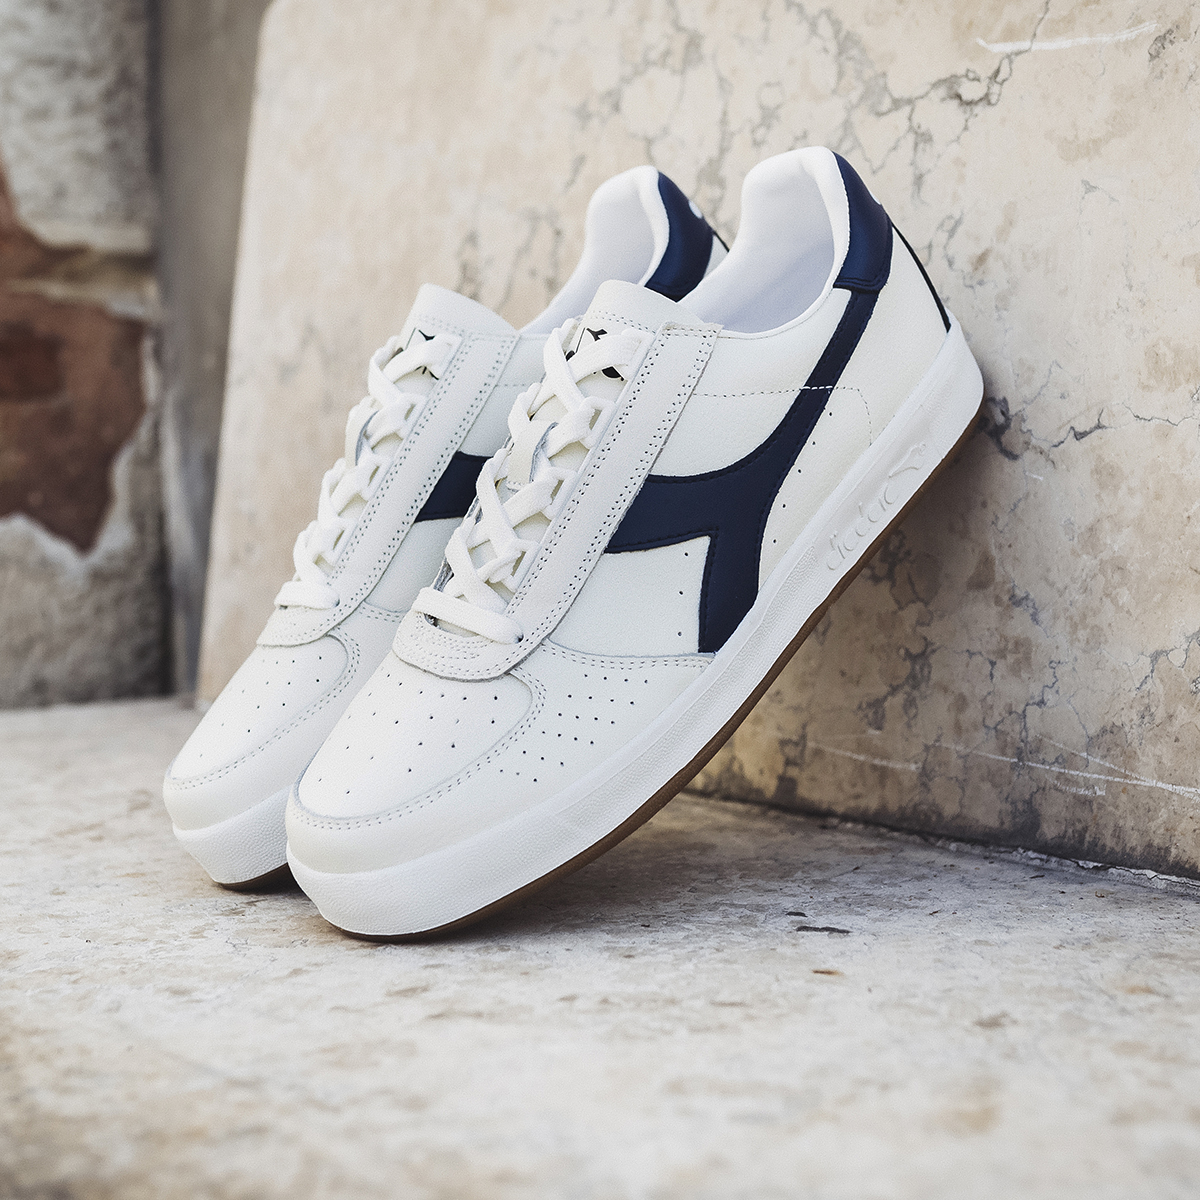 Diadora Borg Elite Trainer Black